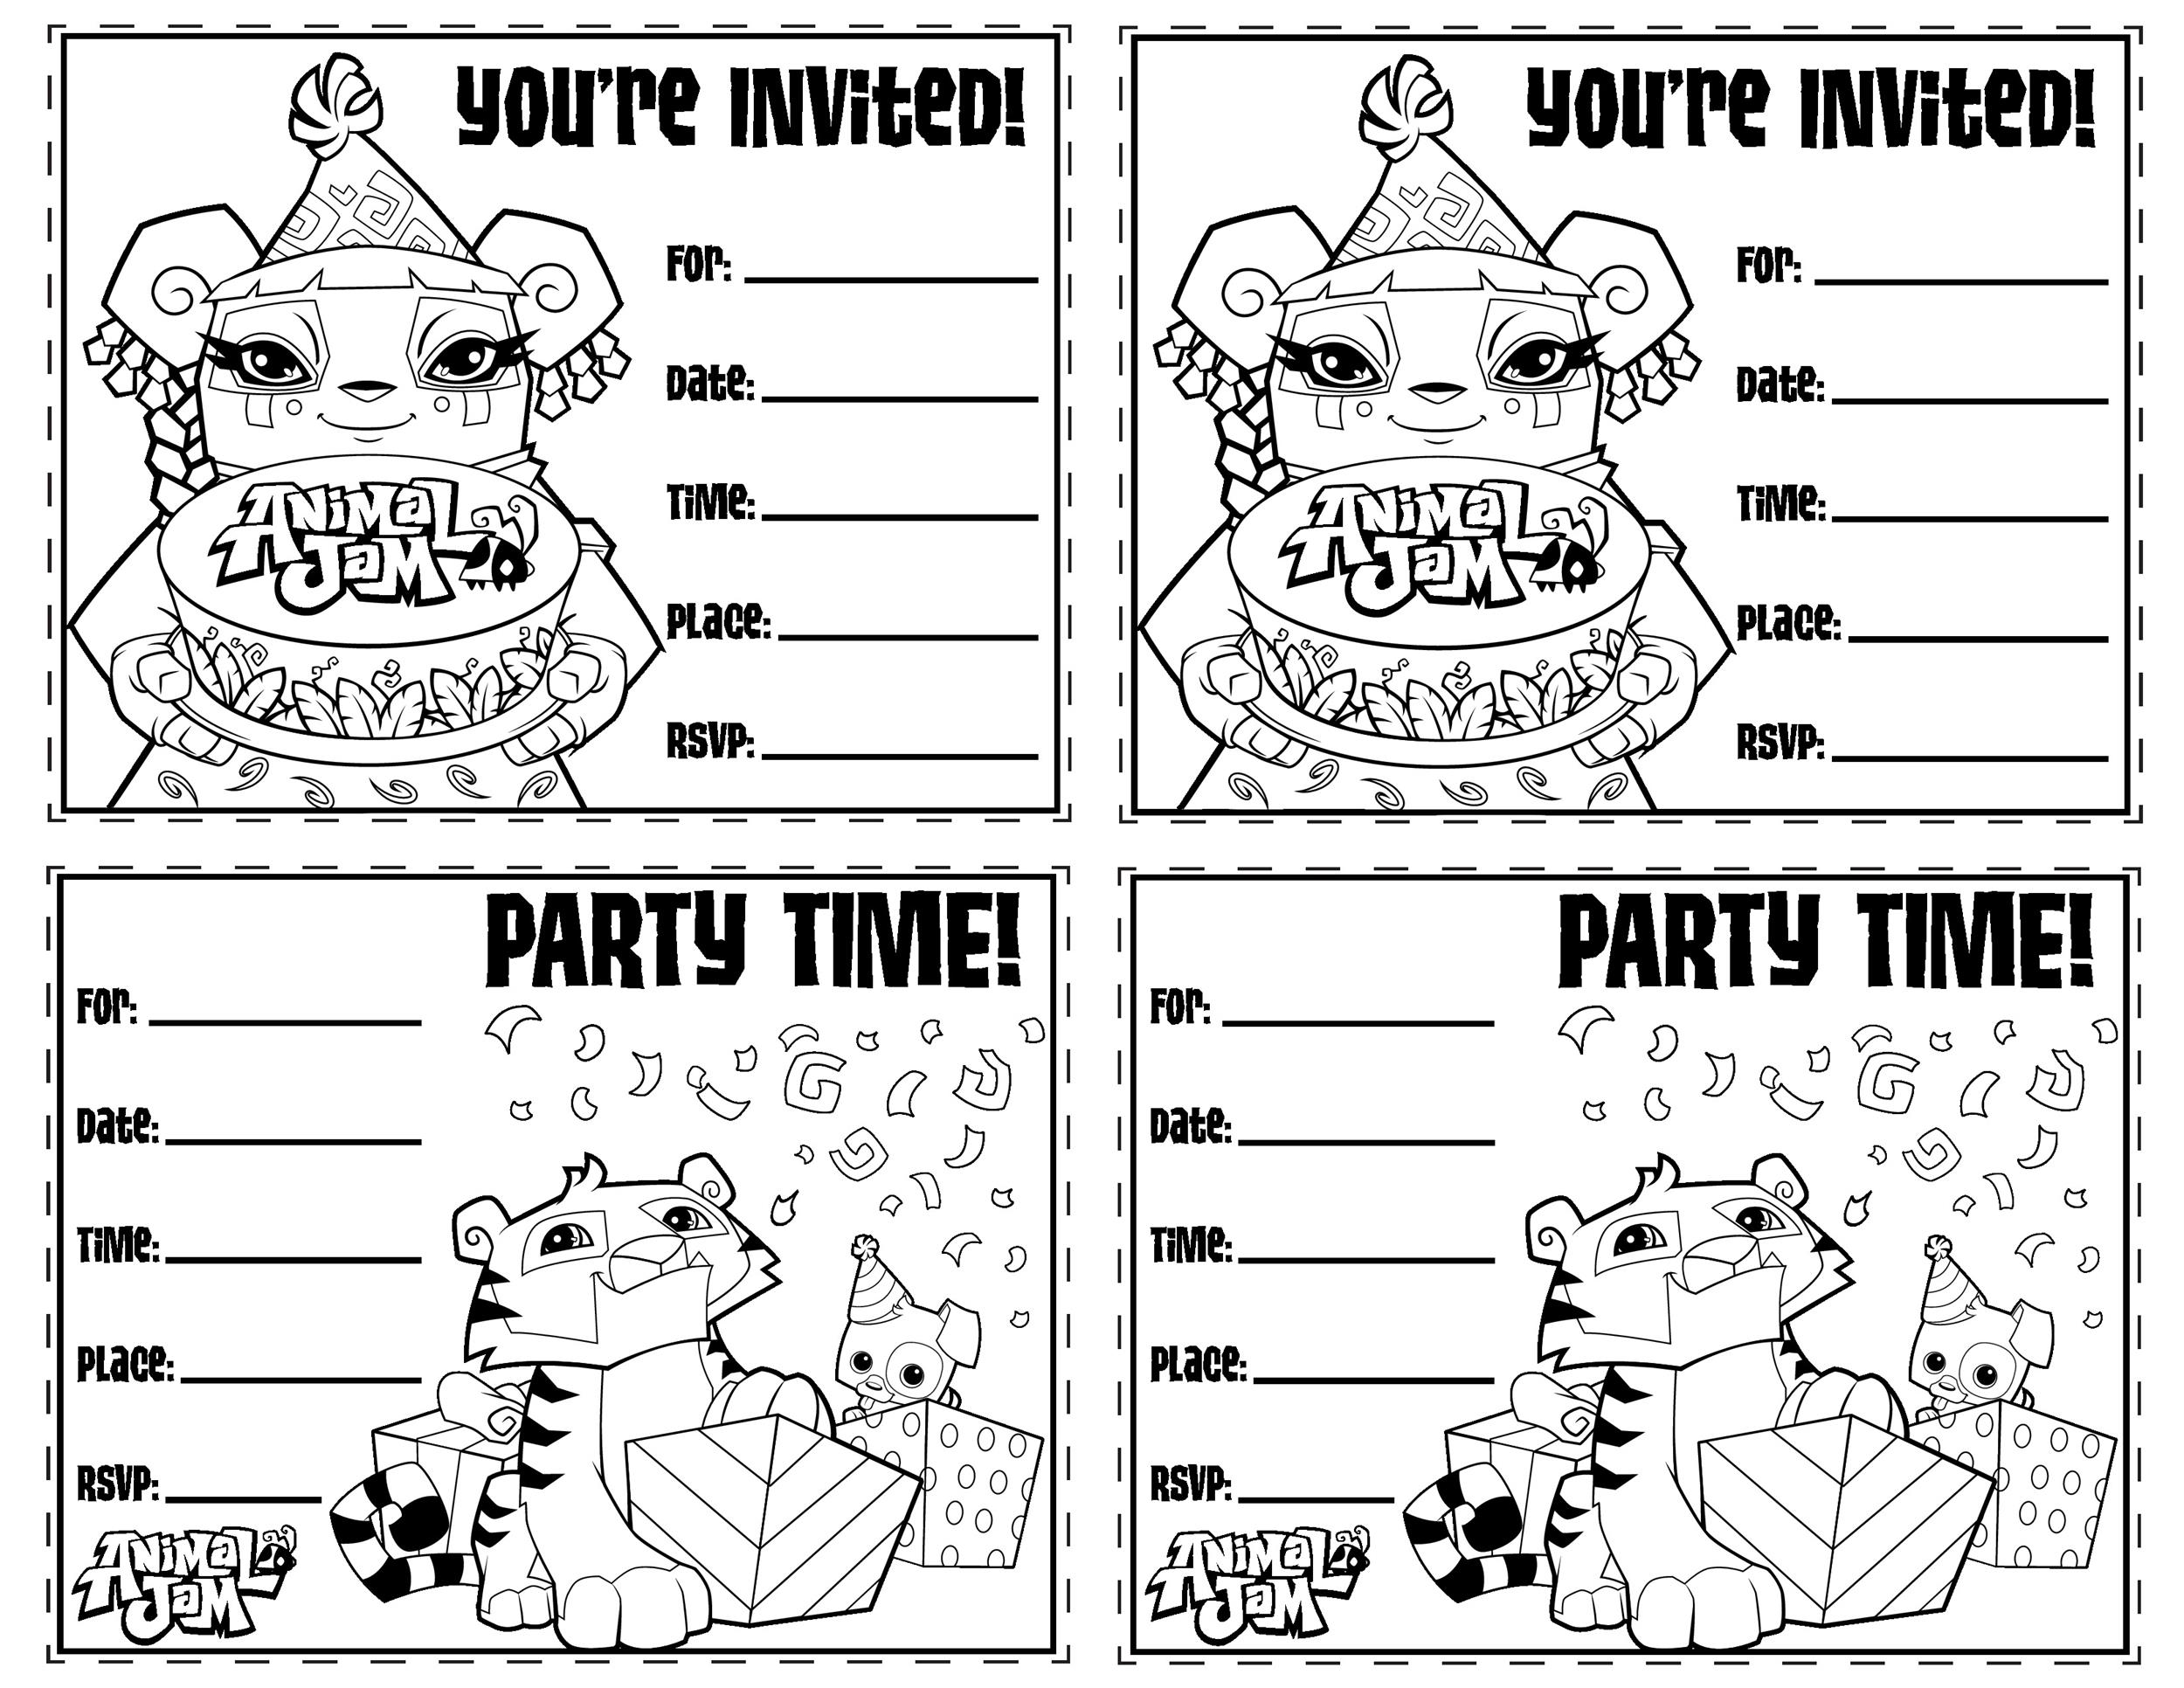 40 free birthday party invitation templates template lab printable birthday invitation template 02 stopboris